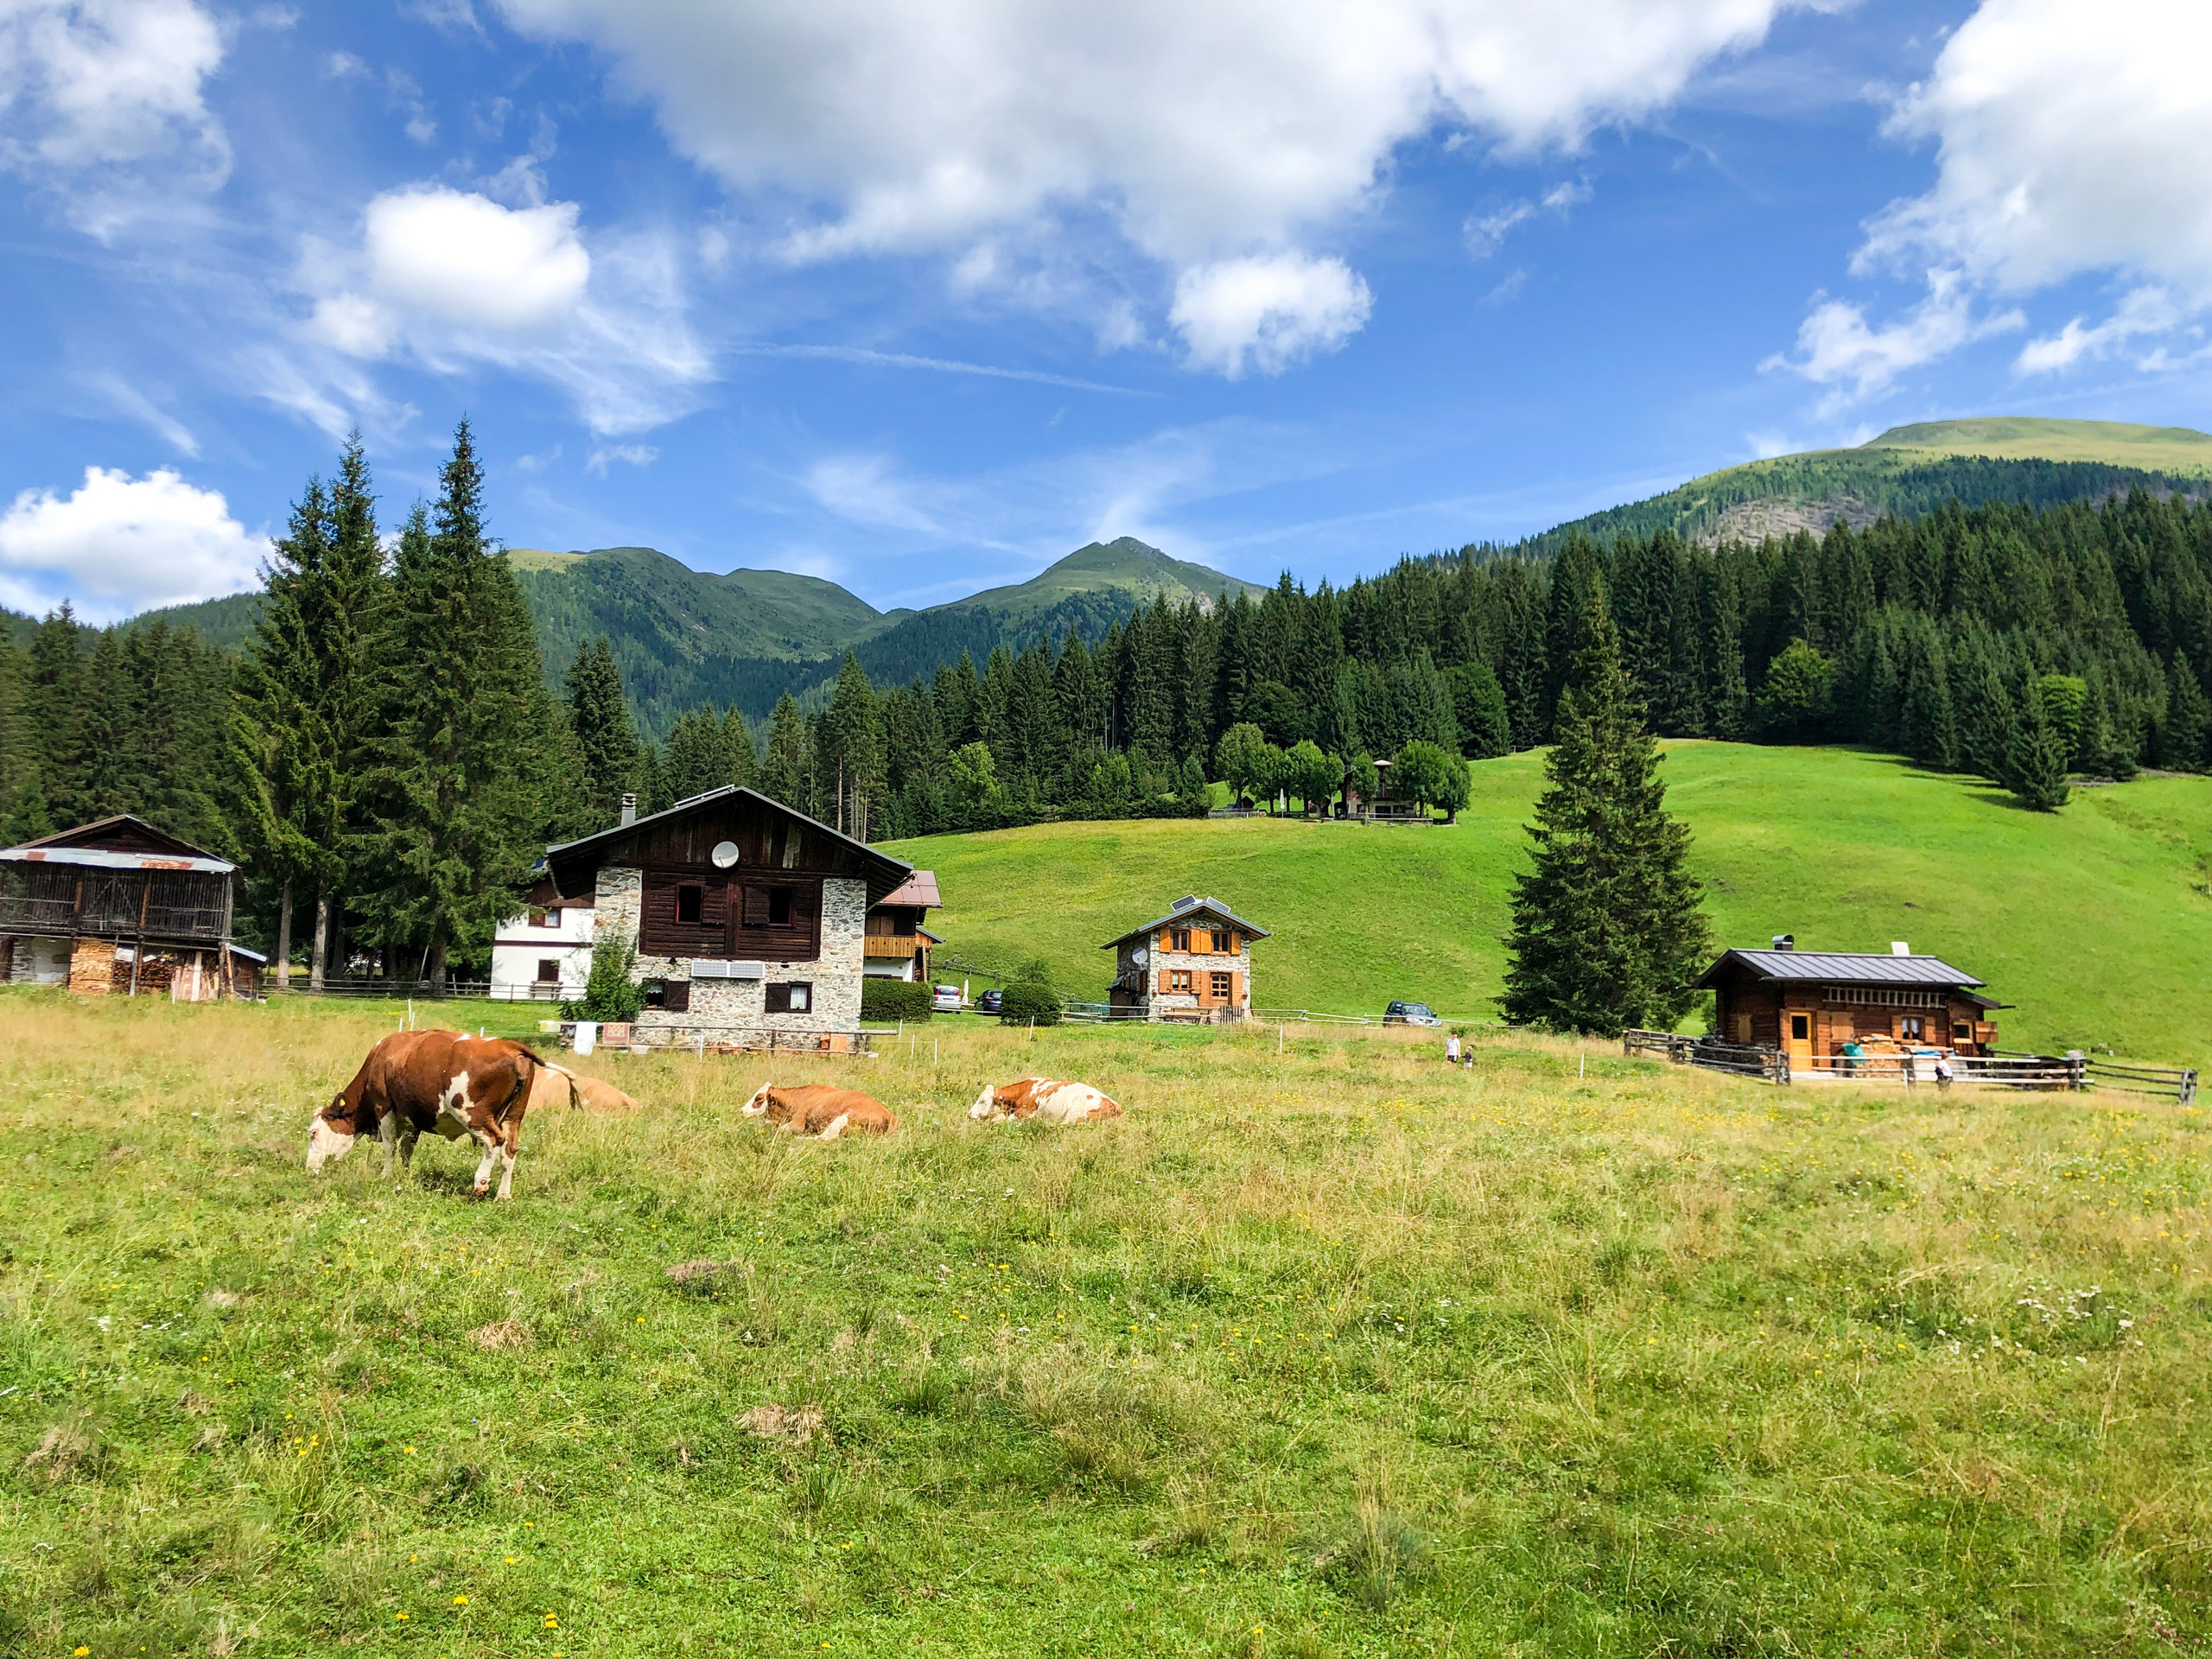 Cows in a mountain village